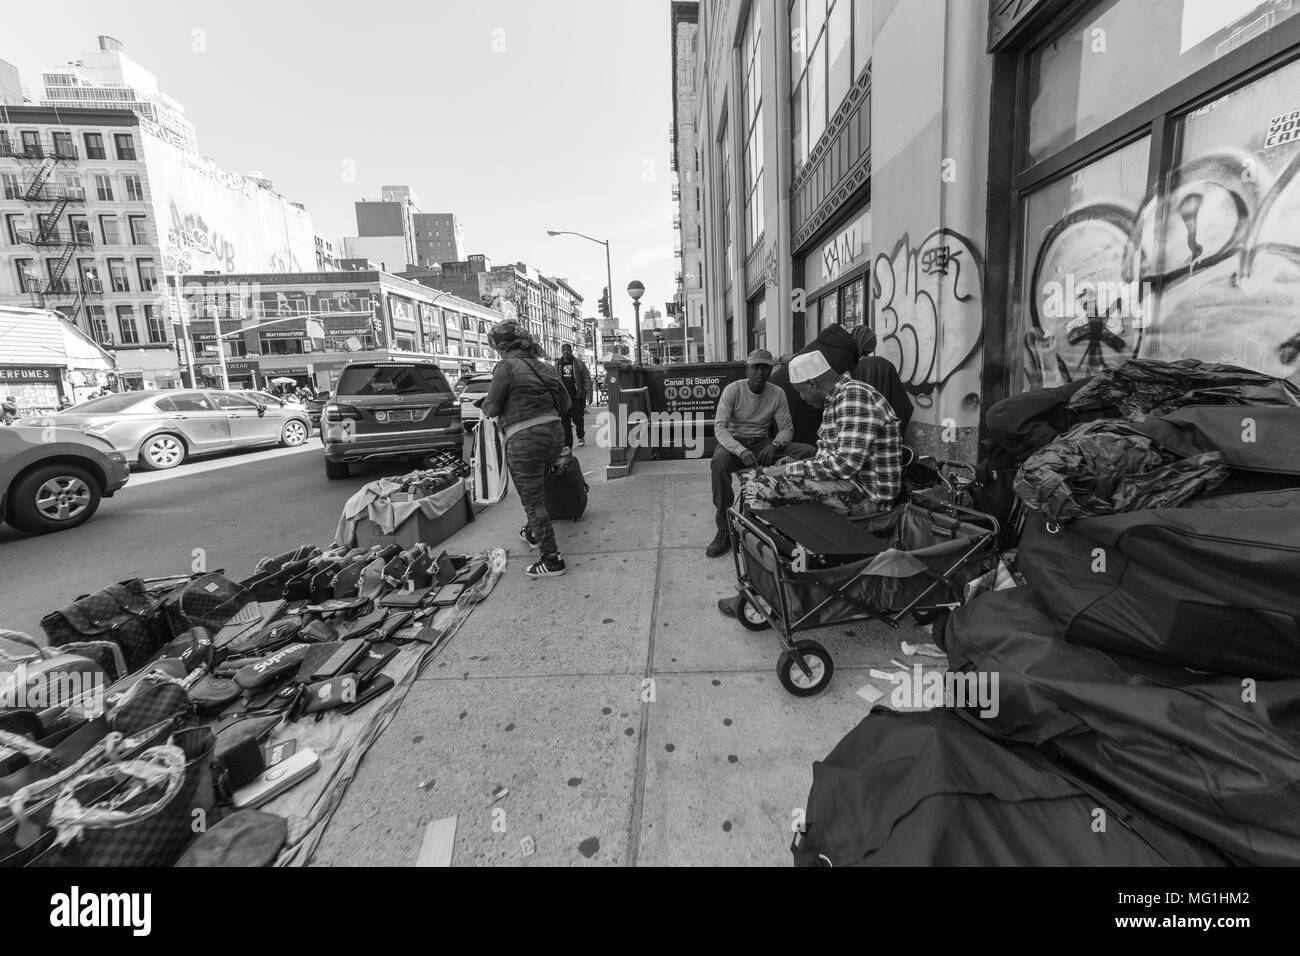 Street shot of people selling purses and watches, NYC Manhattan Stock Photo